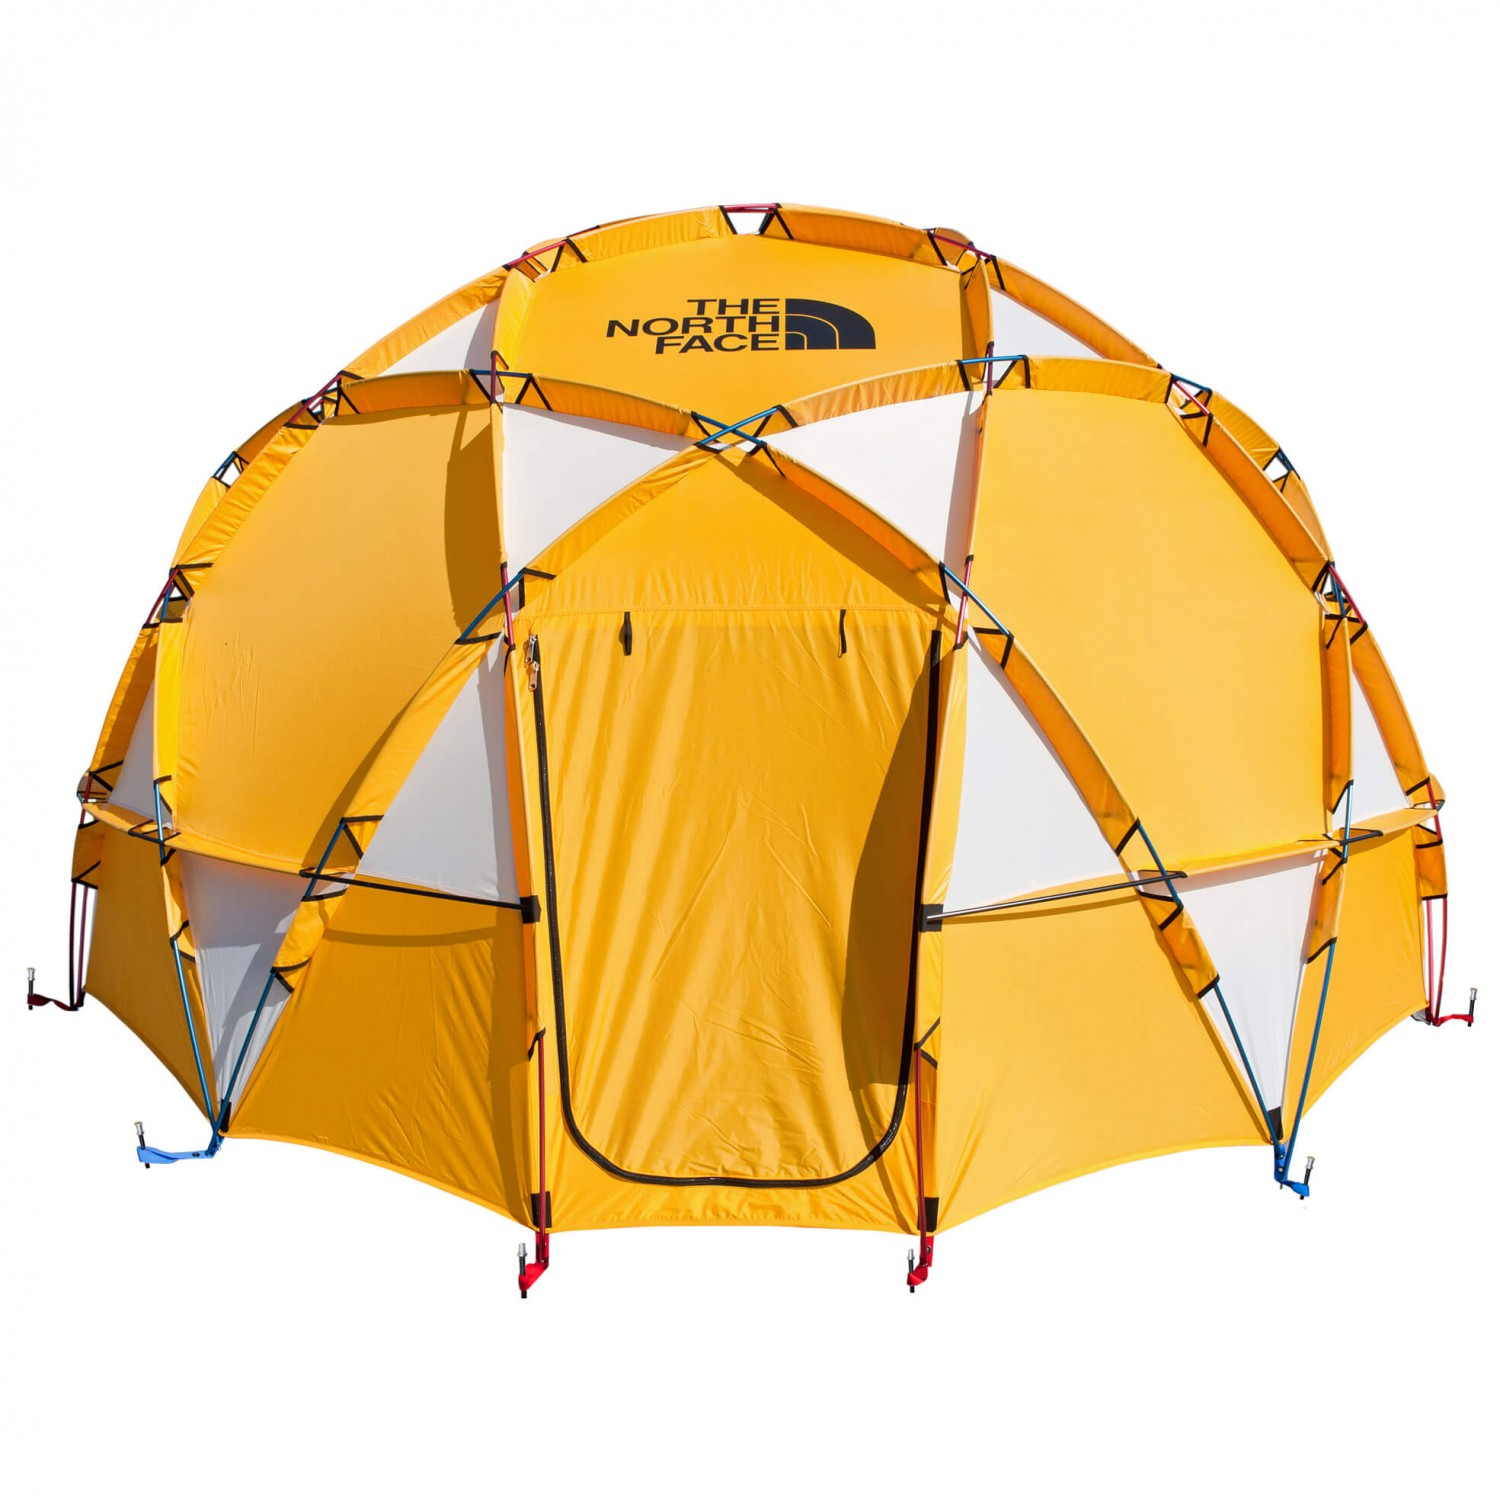 The North Face 2-Meter Dome - 8-Person Tent | Free UK ...